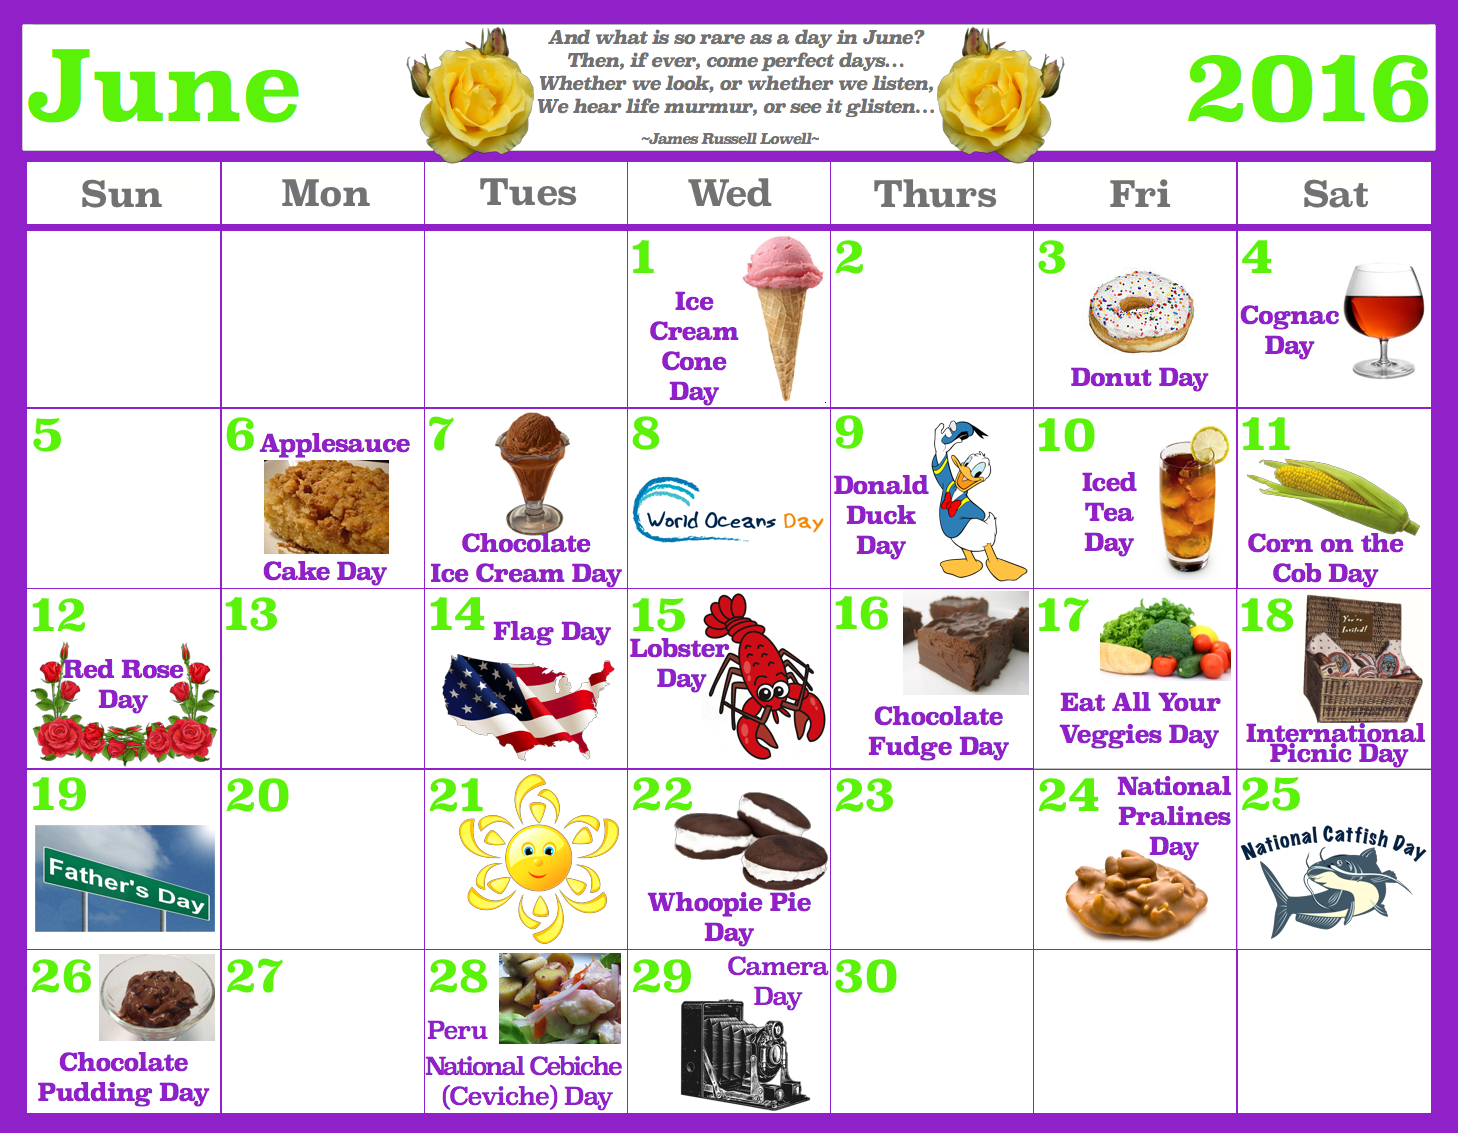 June Food Celebrations